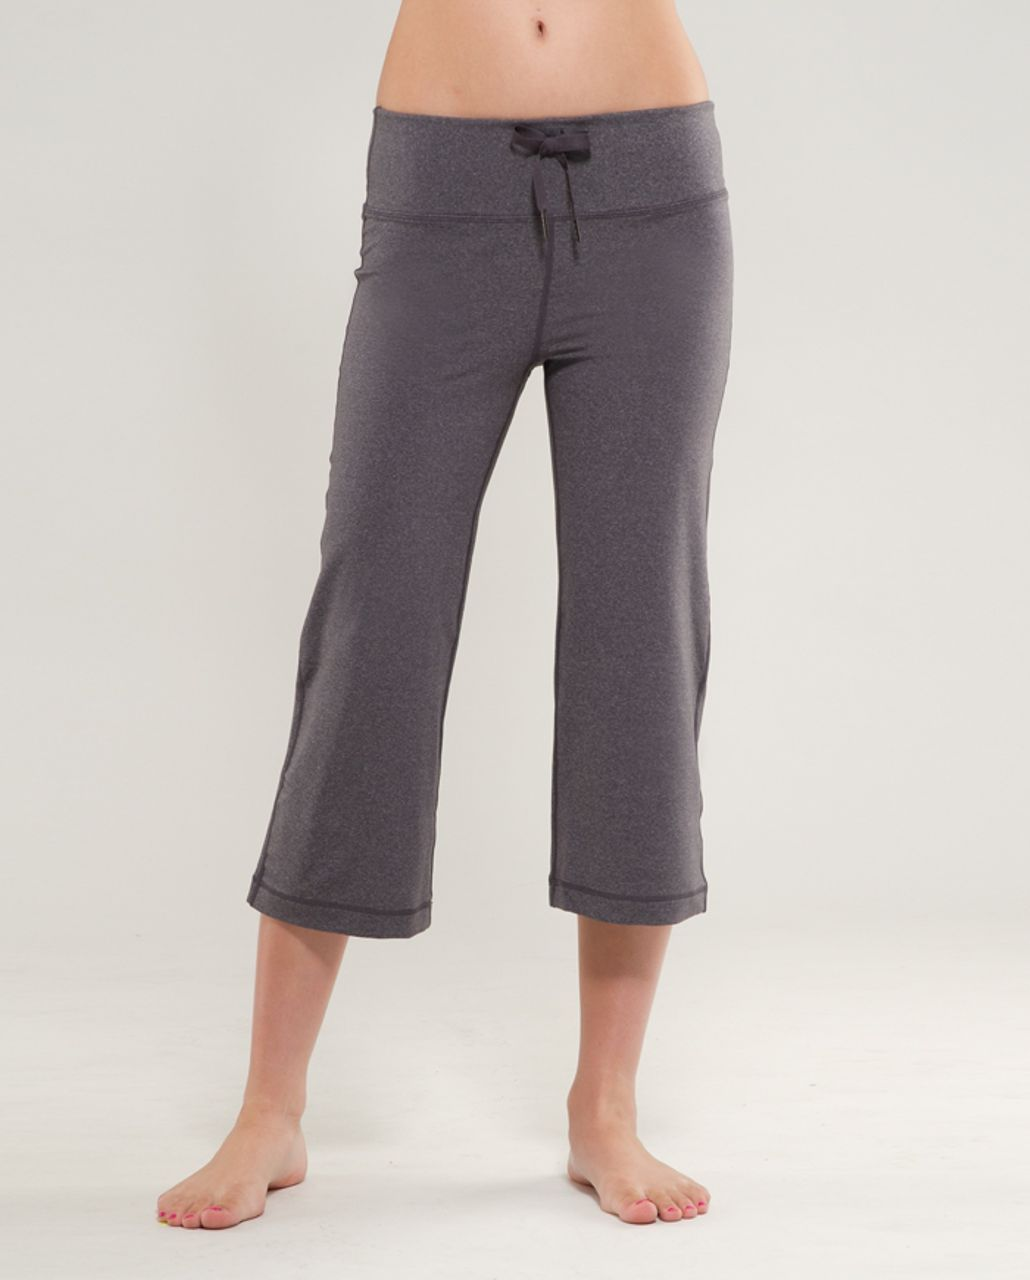 Lululemon Relaxed Fit Crop II - Heathered Coal